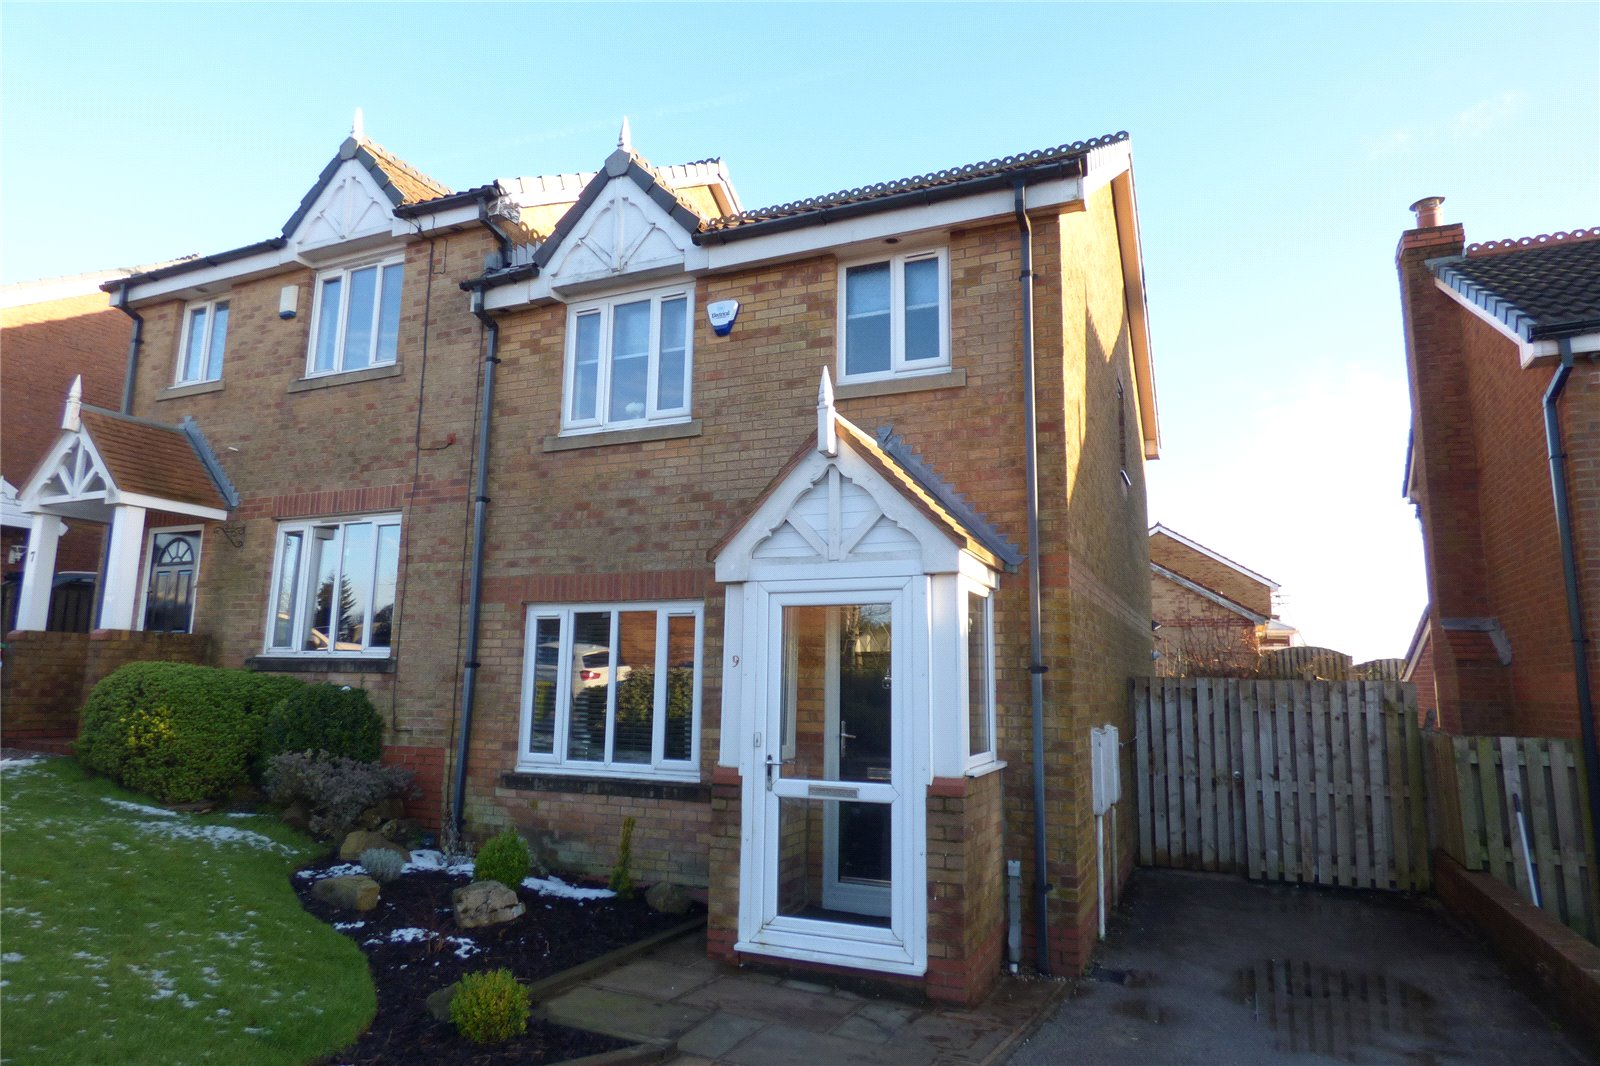 3 Bedrooms Semi Detached House for sale in Buttercup Drive, Moorside, Oldham, Greater Manchester, OL4